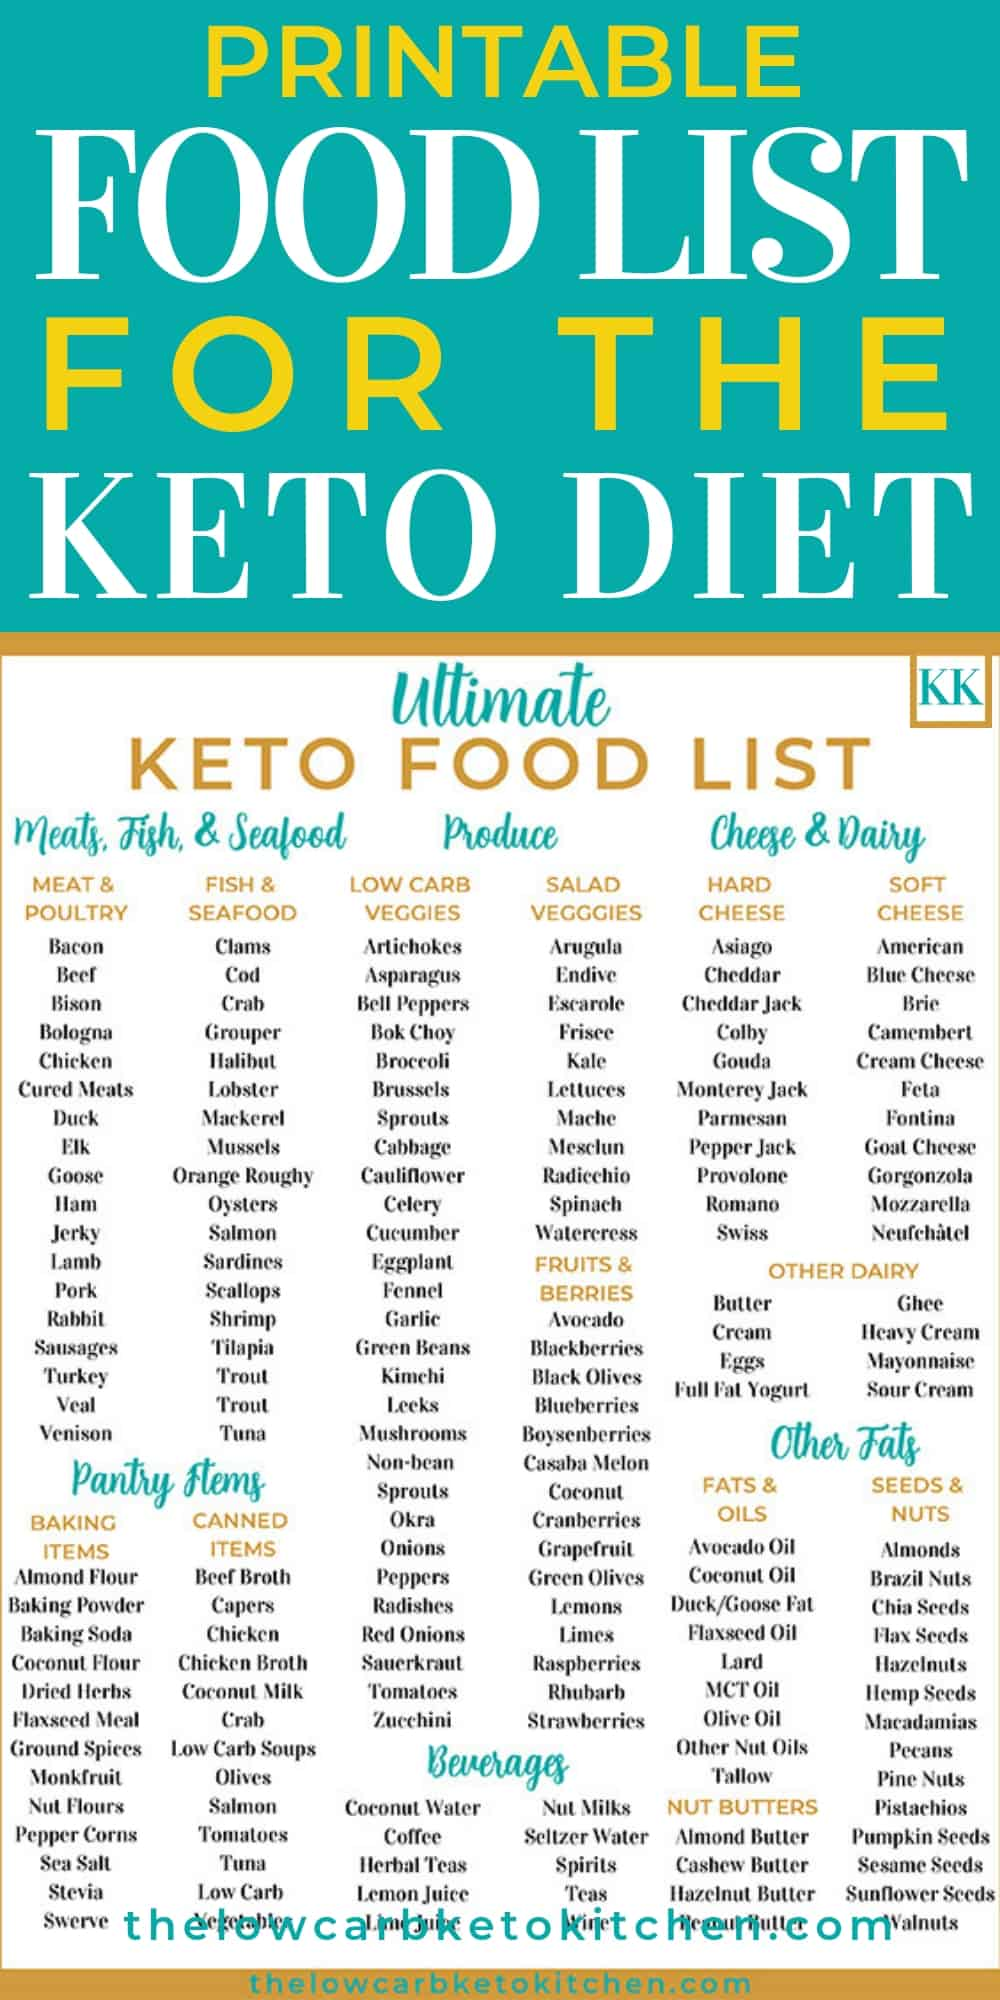 Current image with printable keto diet food list